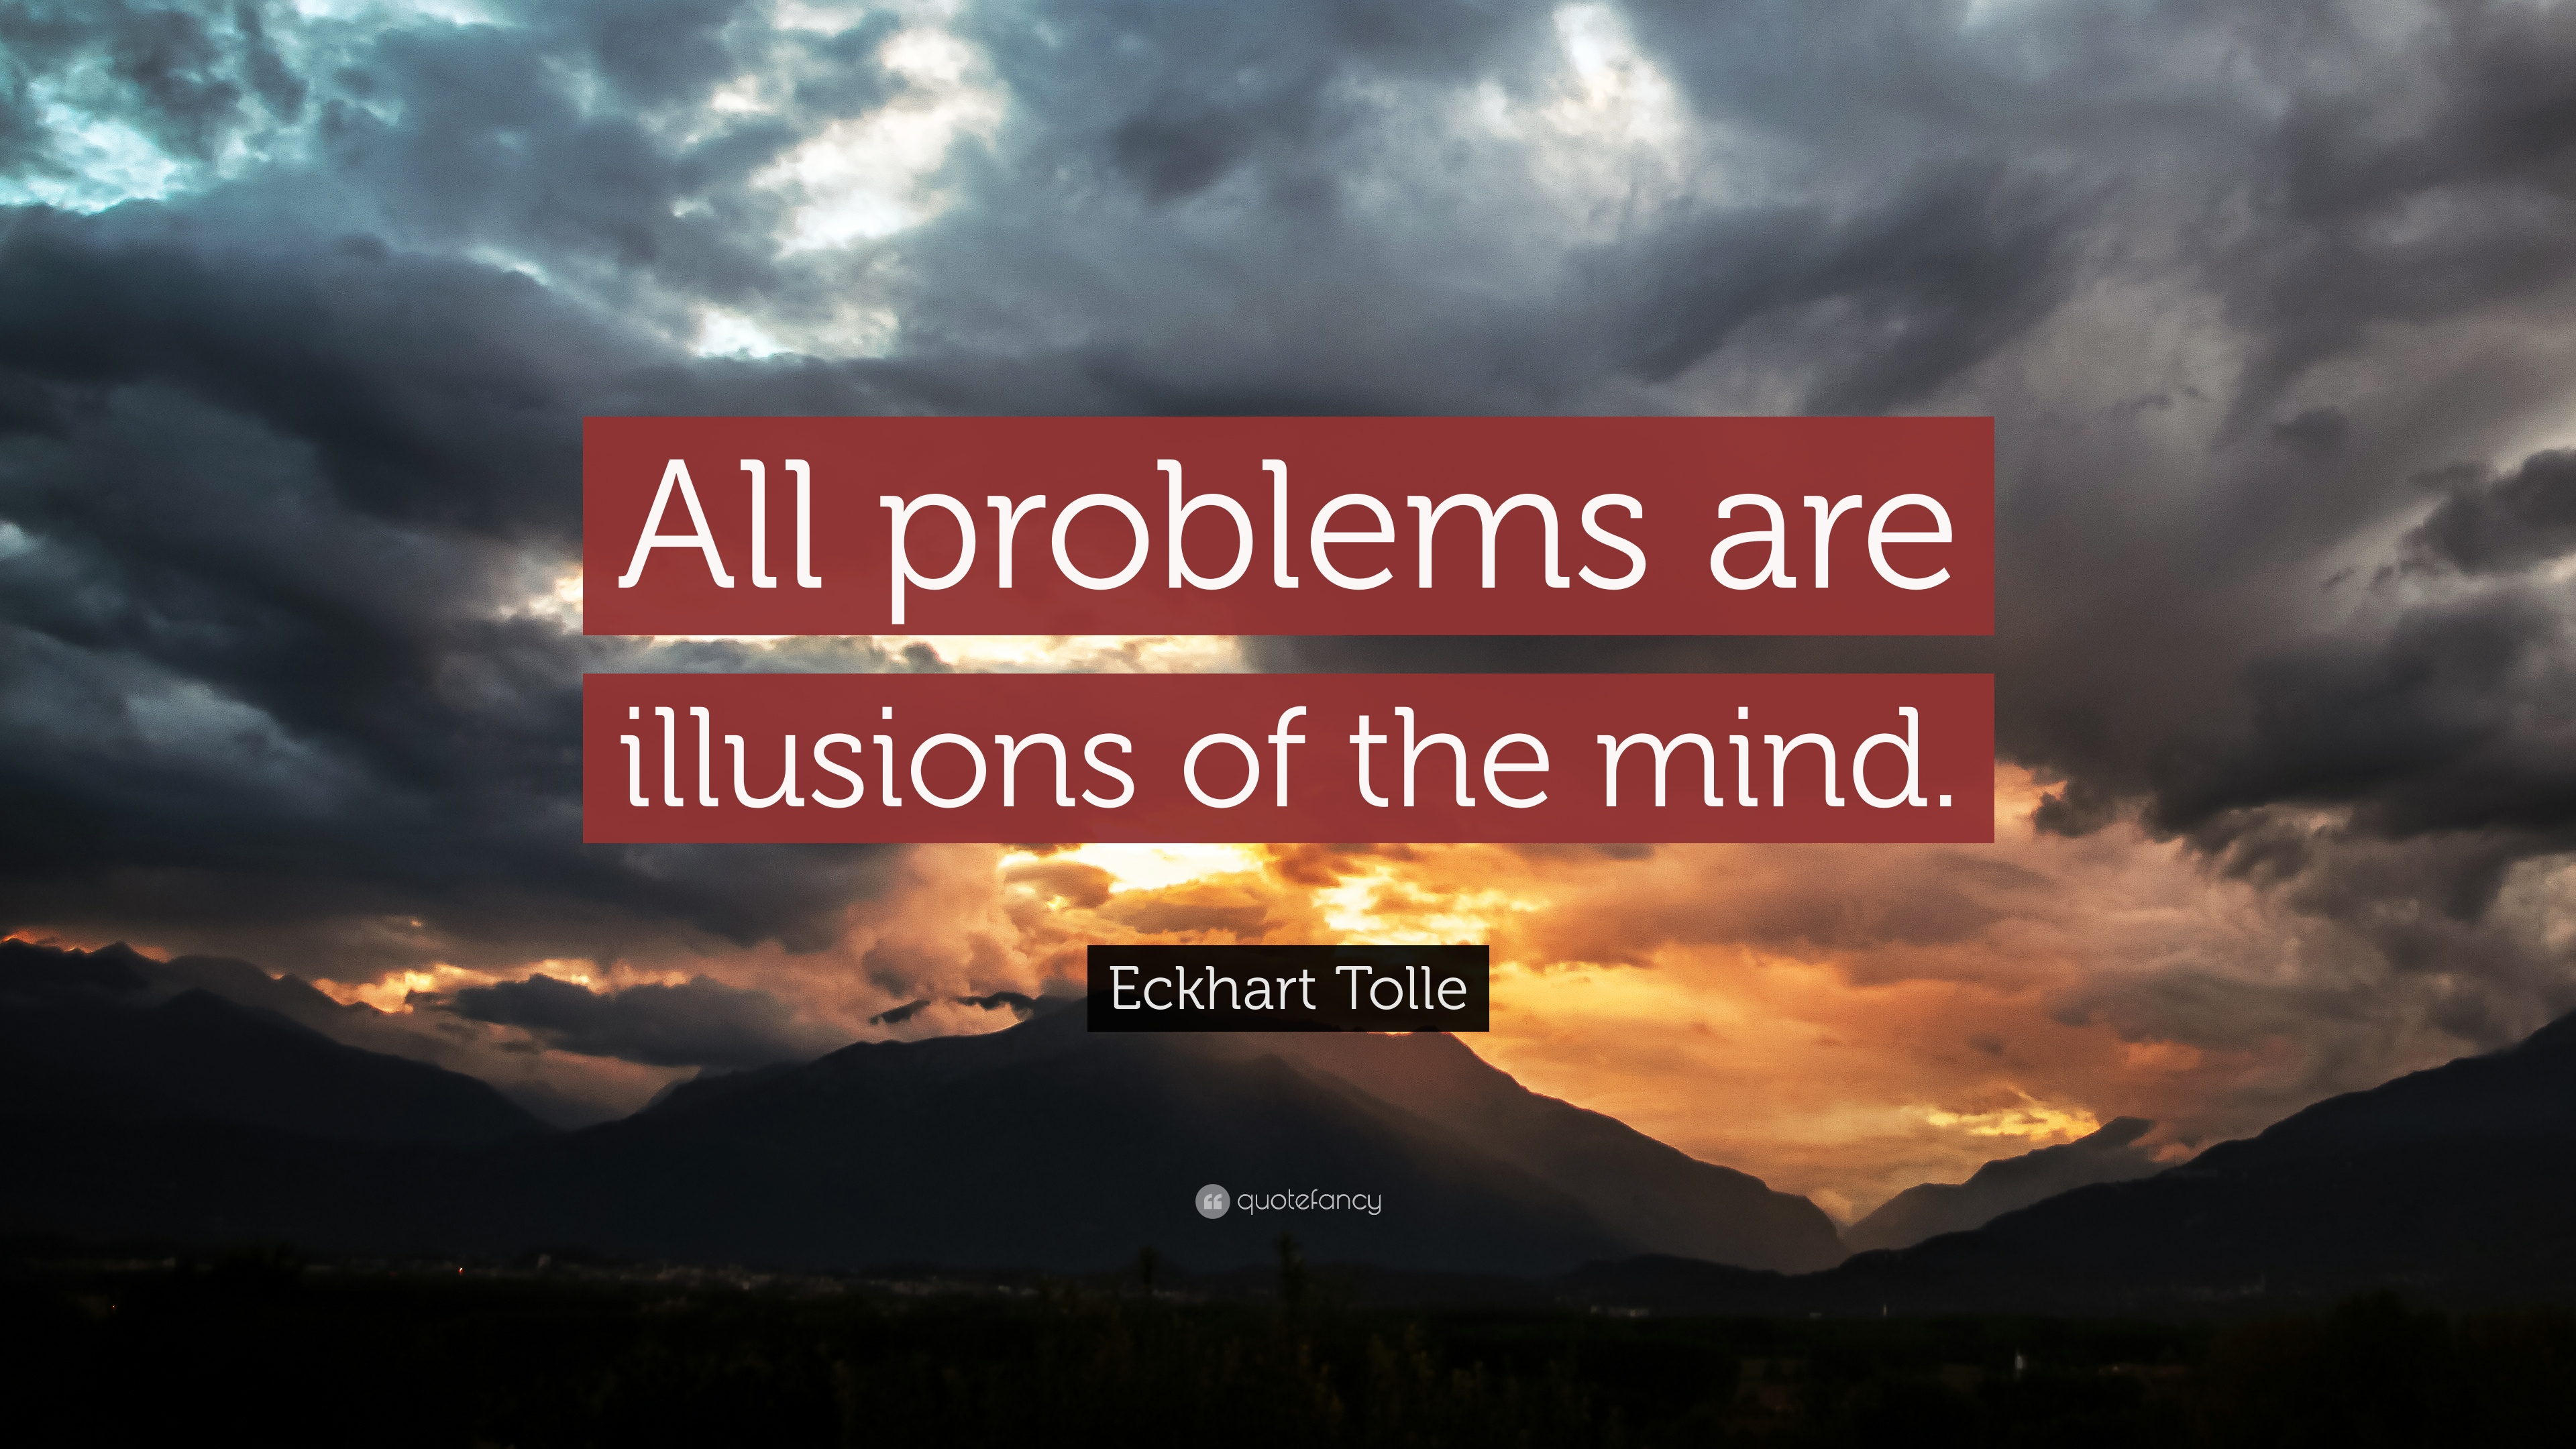 Eckhart Tolle Quote: U201cAll Problems Are Illusions Of The Mind.u201d